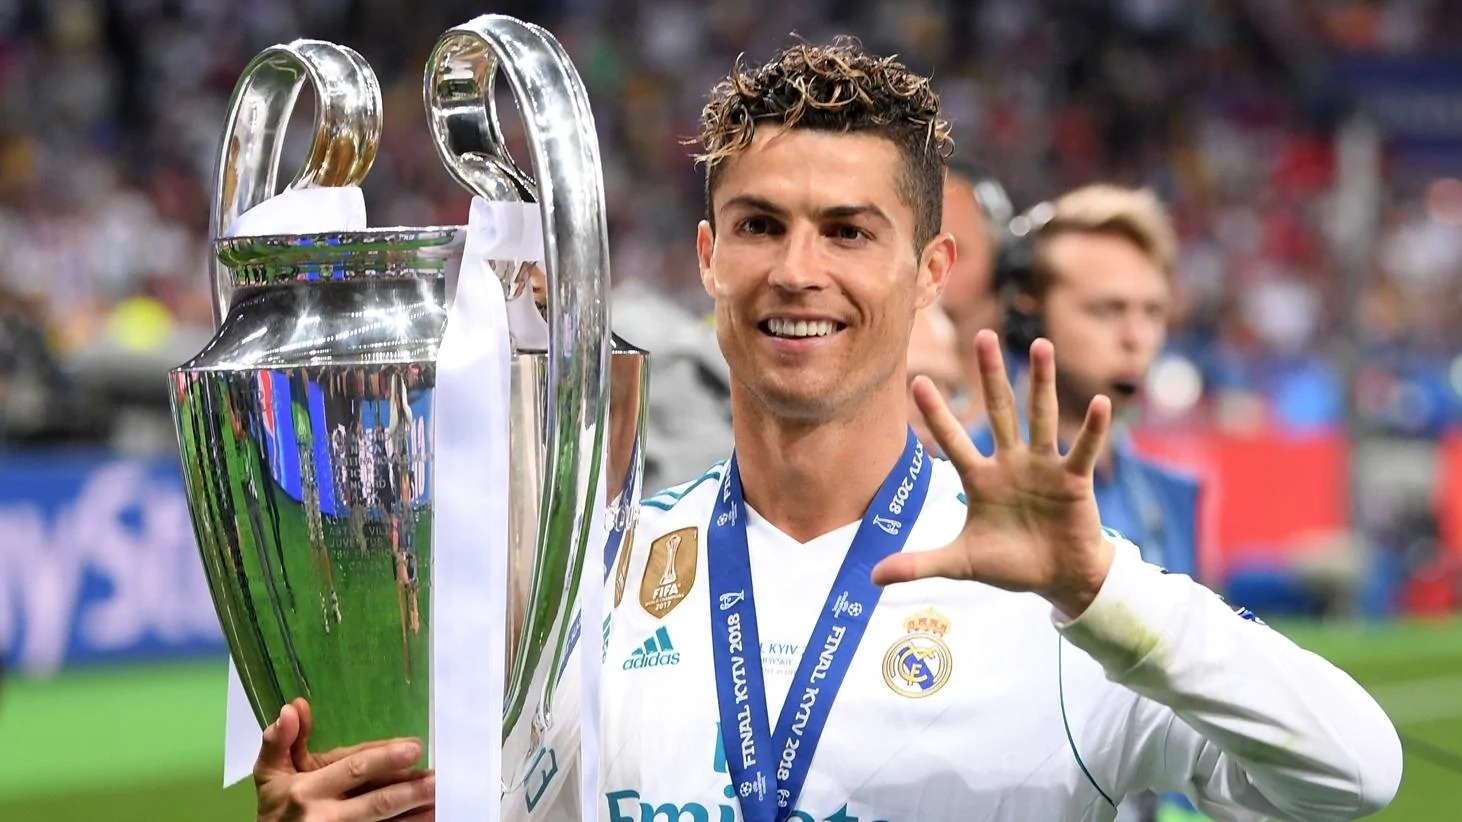 Cristiano Ronaldo won his fifth Champions League title with Real Madrid in 2018.